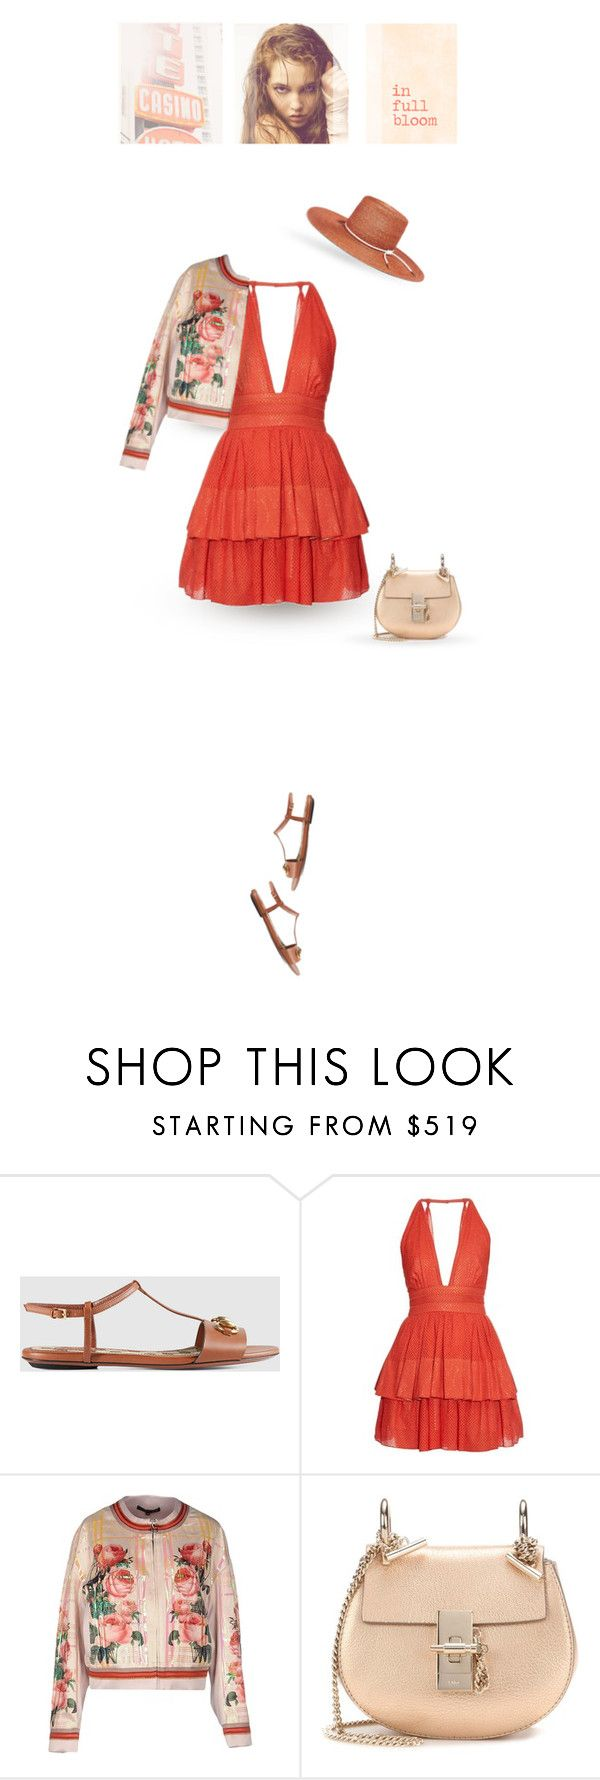 """""""in full bloom"""" by pinkchampagneme ❤ liked on Polyvore featuring Gucci, Sophie Theallet, Yohan Kim, DUO, Chloé and Eugenia Kim"""